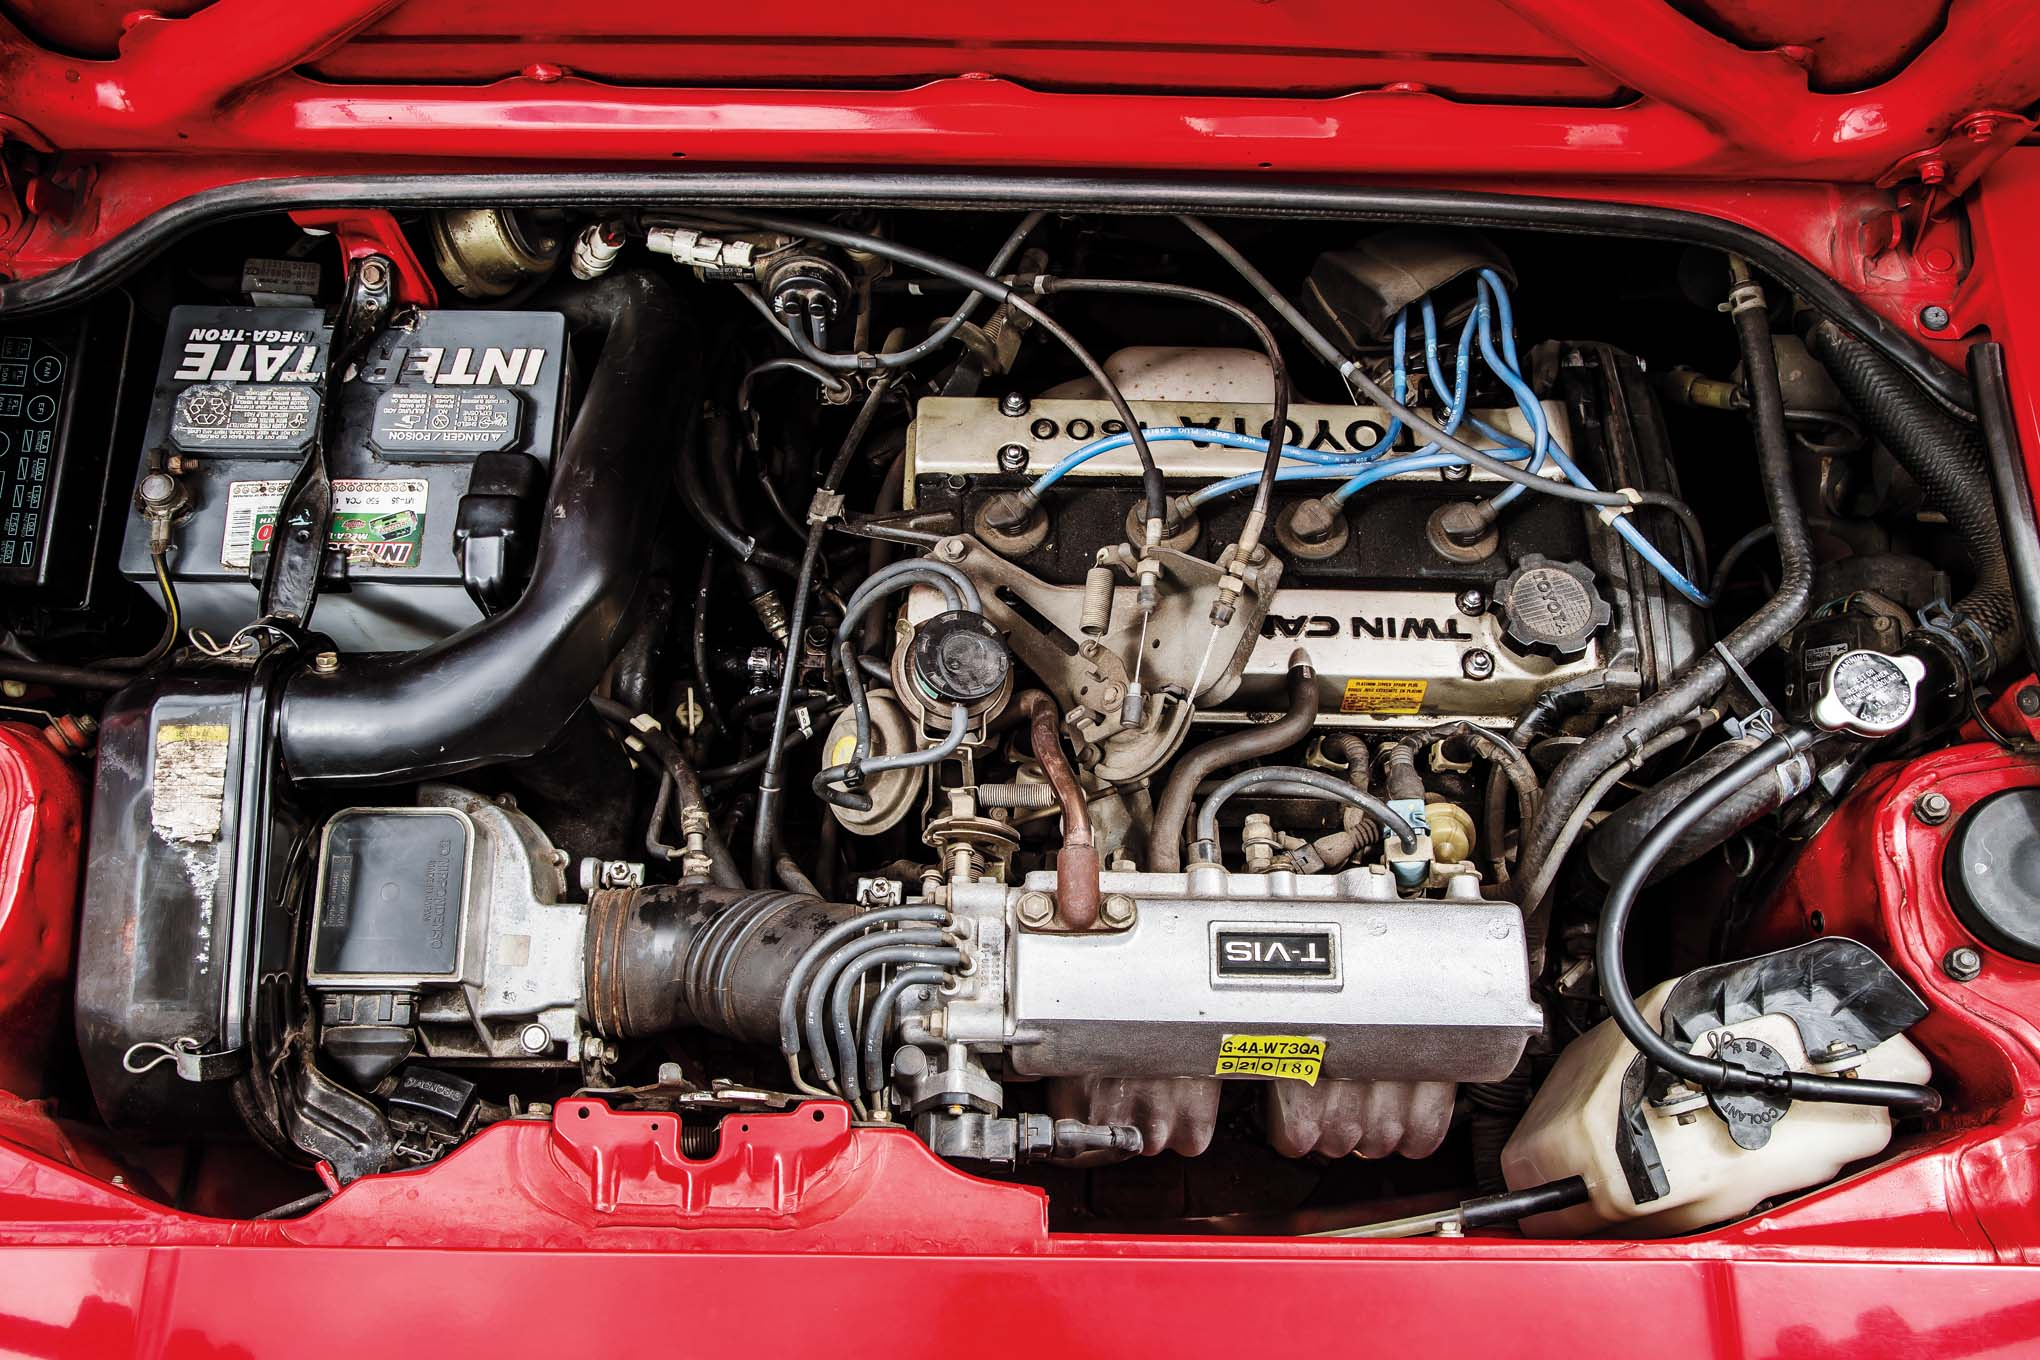 Mr2 Mk1 Engine Swap Toyota Drivers Generation Cult Driving Perfection 2040x1360